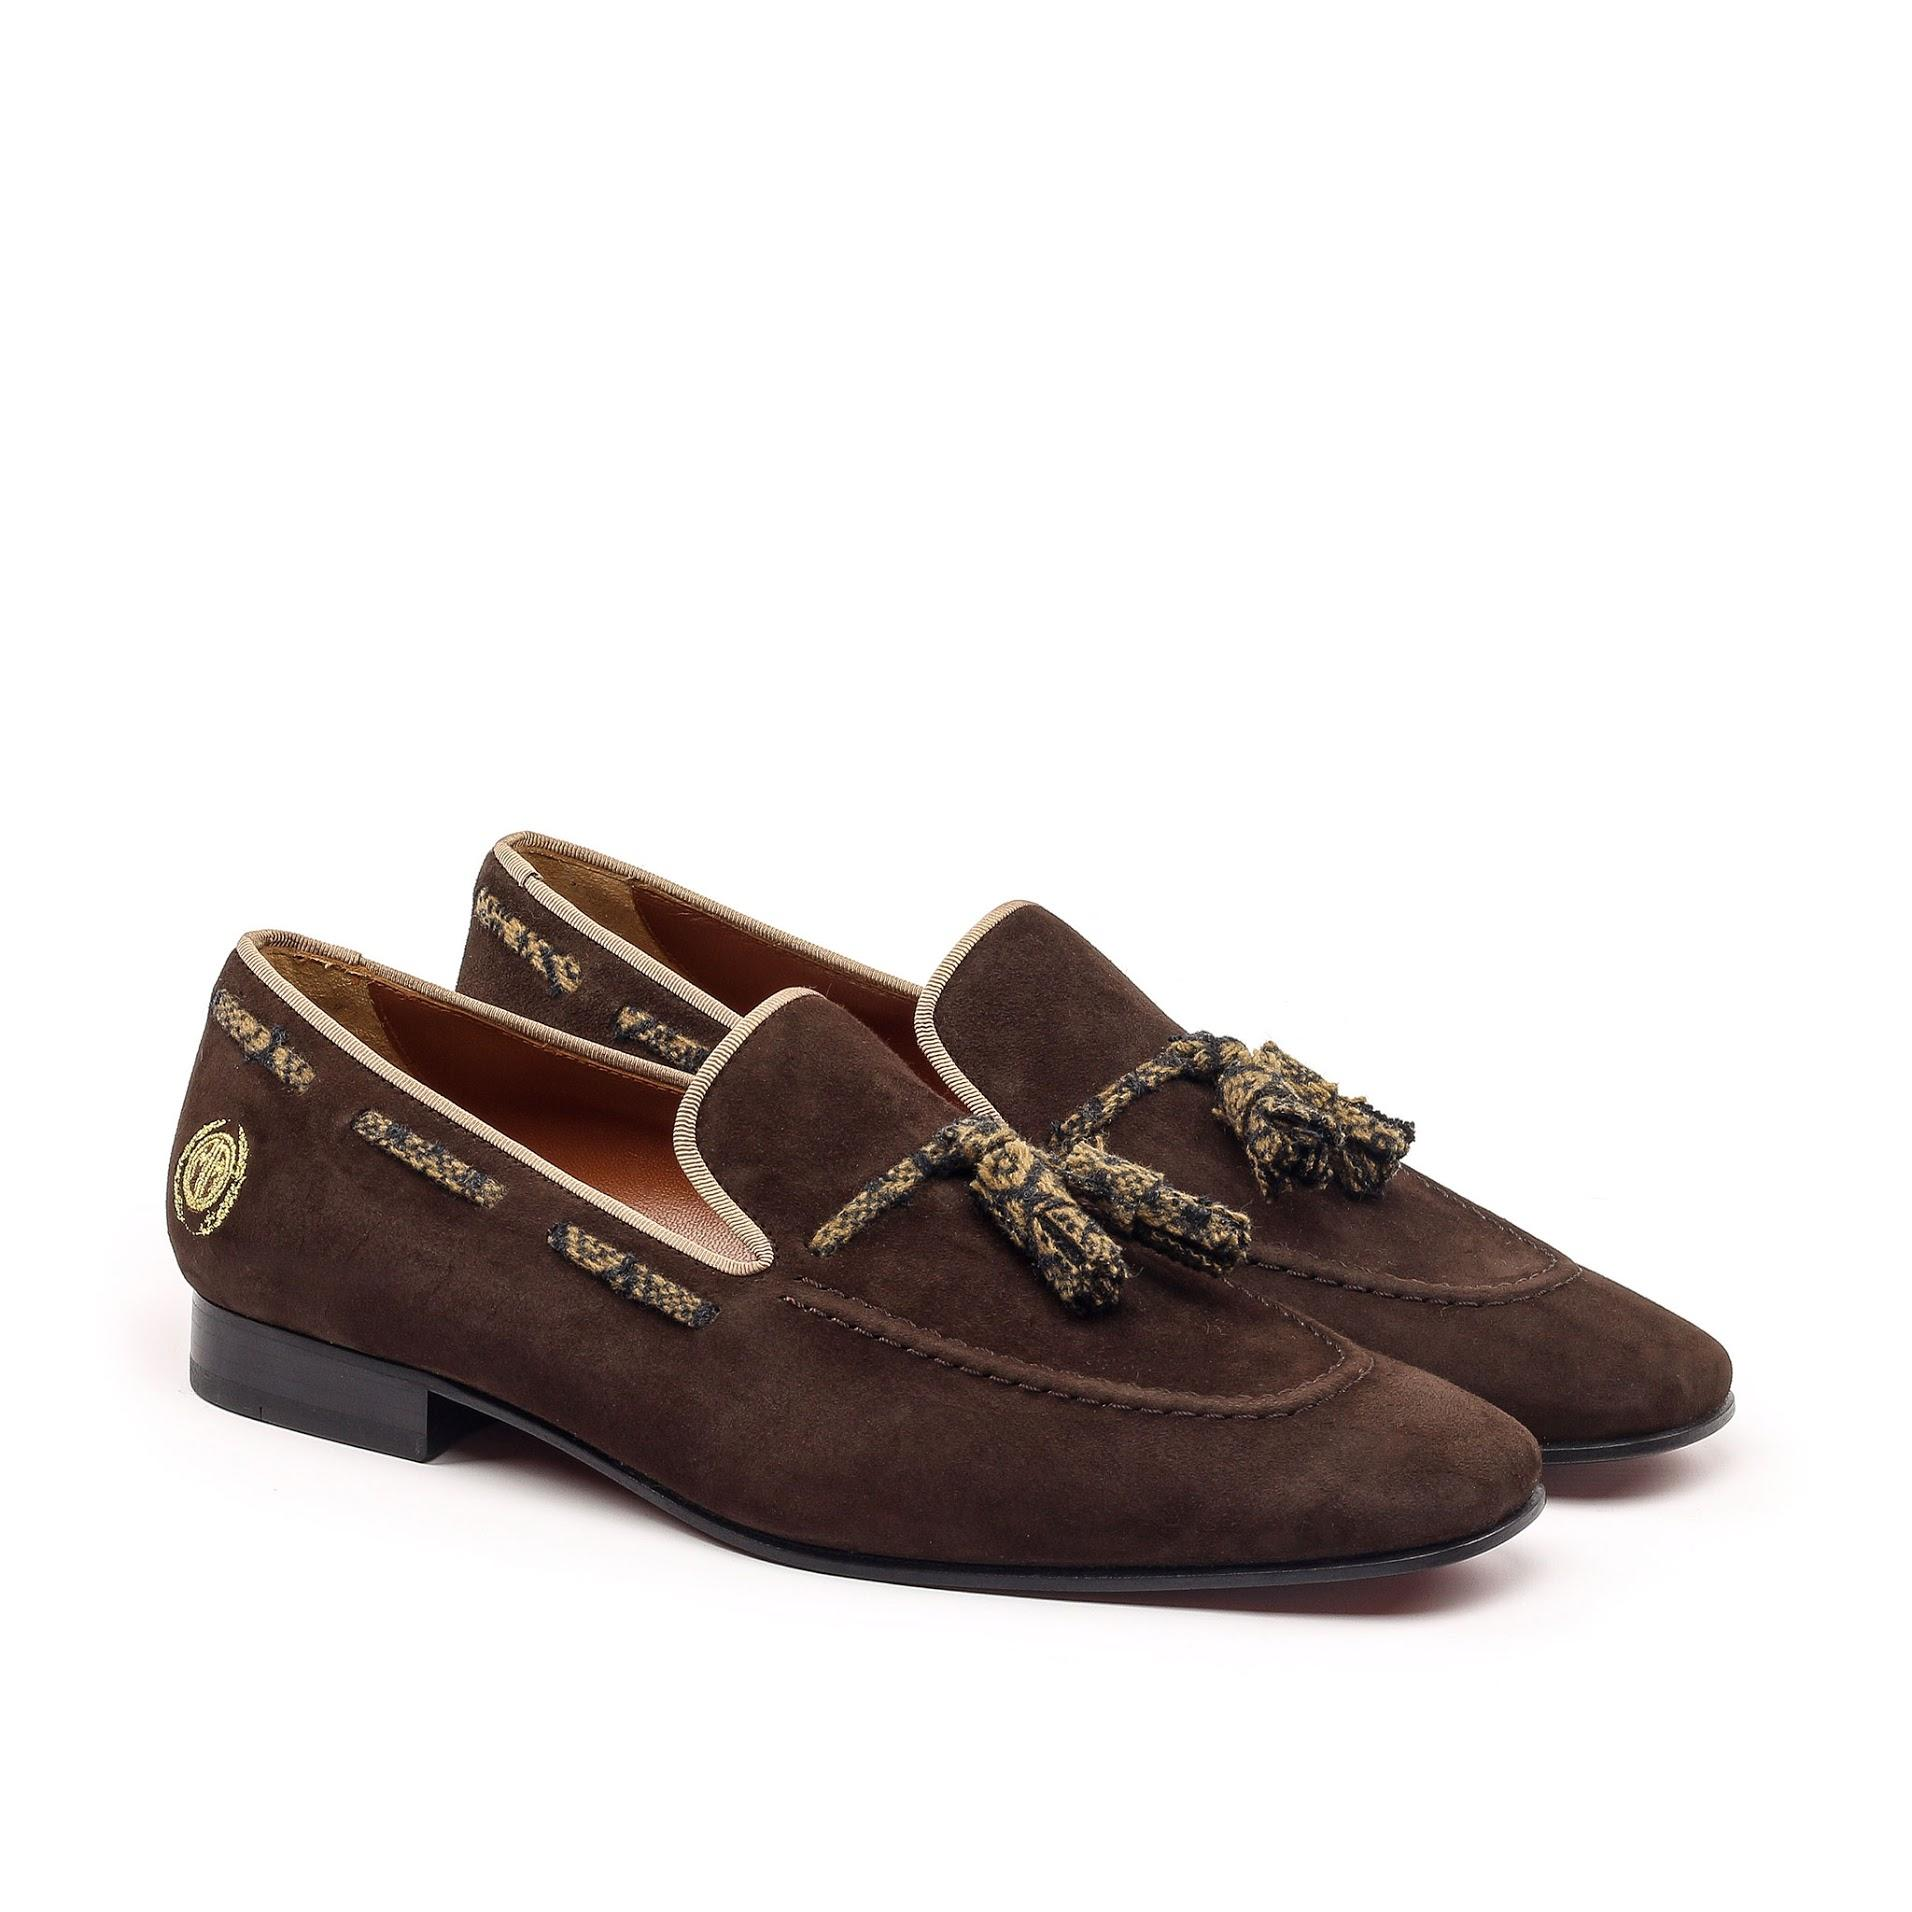 1b5fd901055 Brown Suede Tassel Loafers with Tobacco Cashmere Detailing